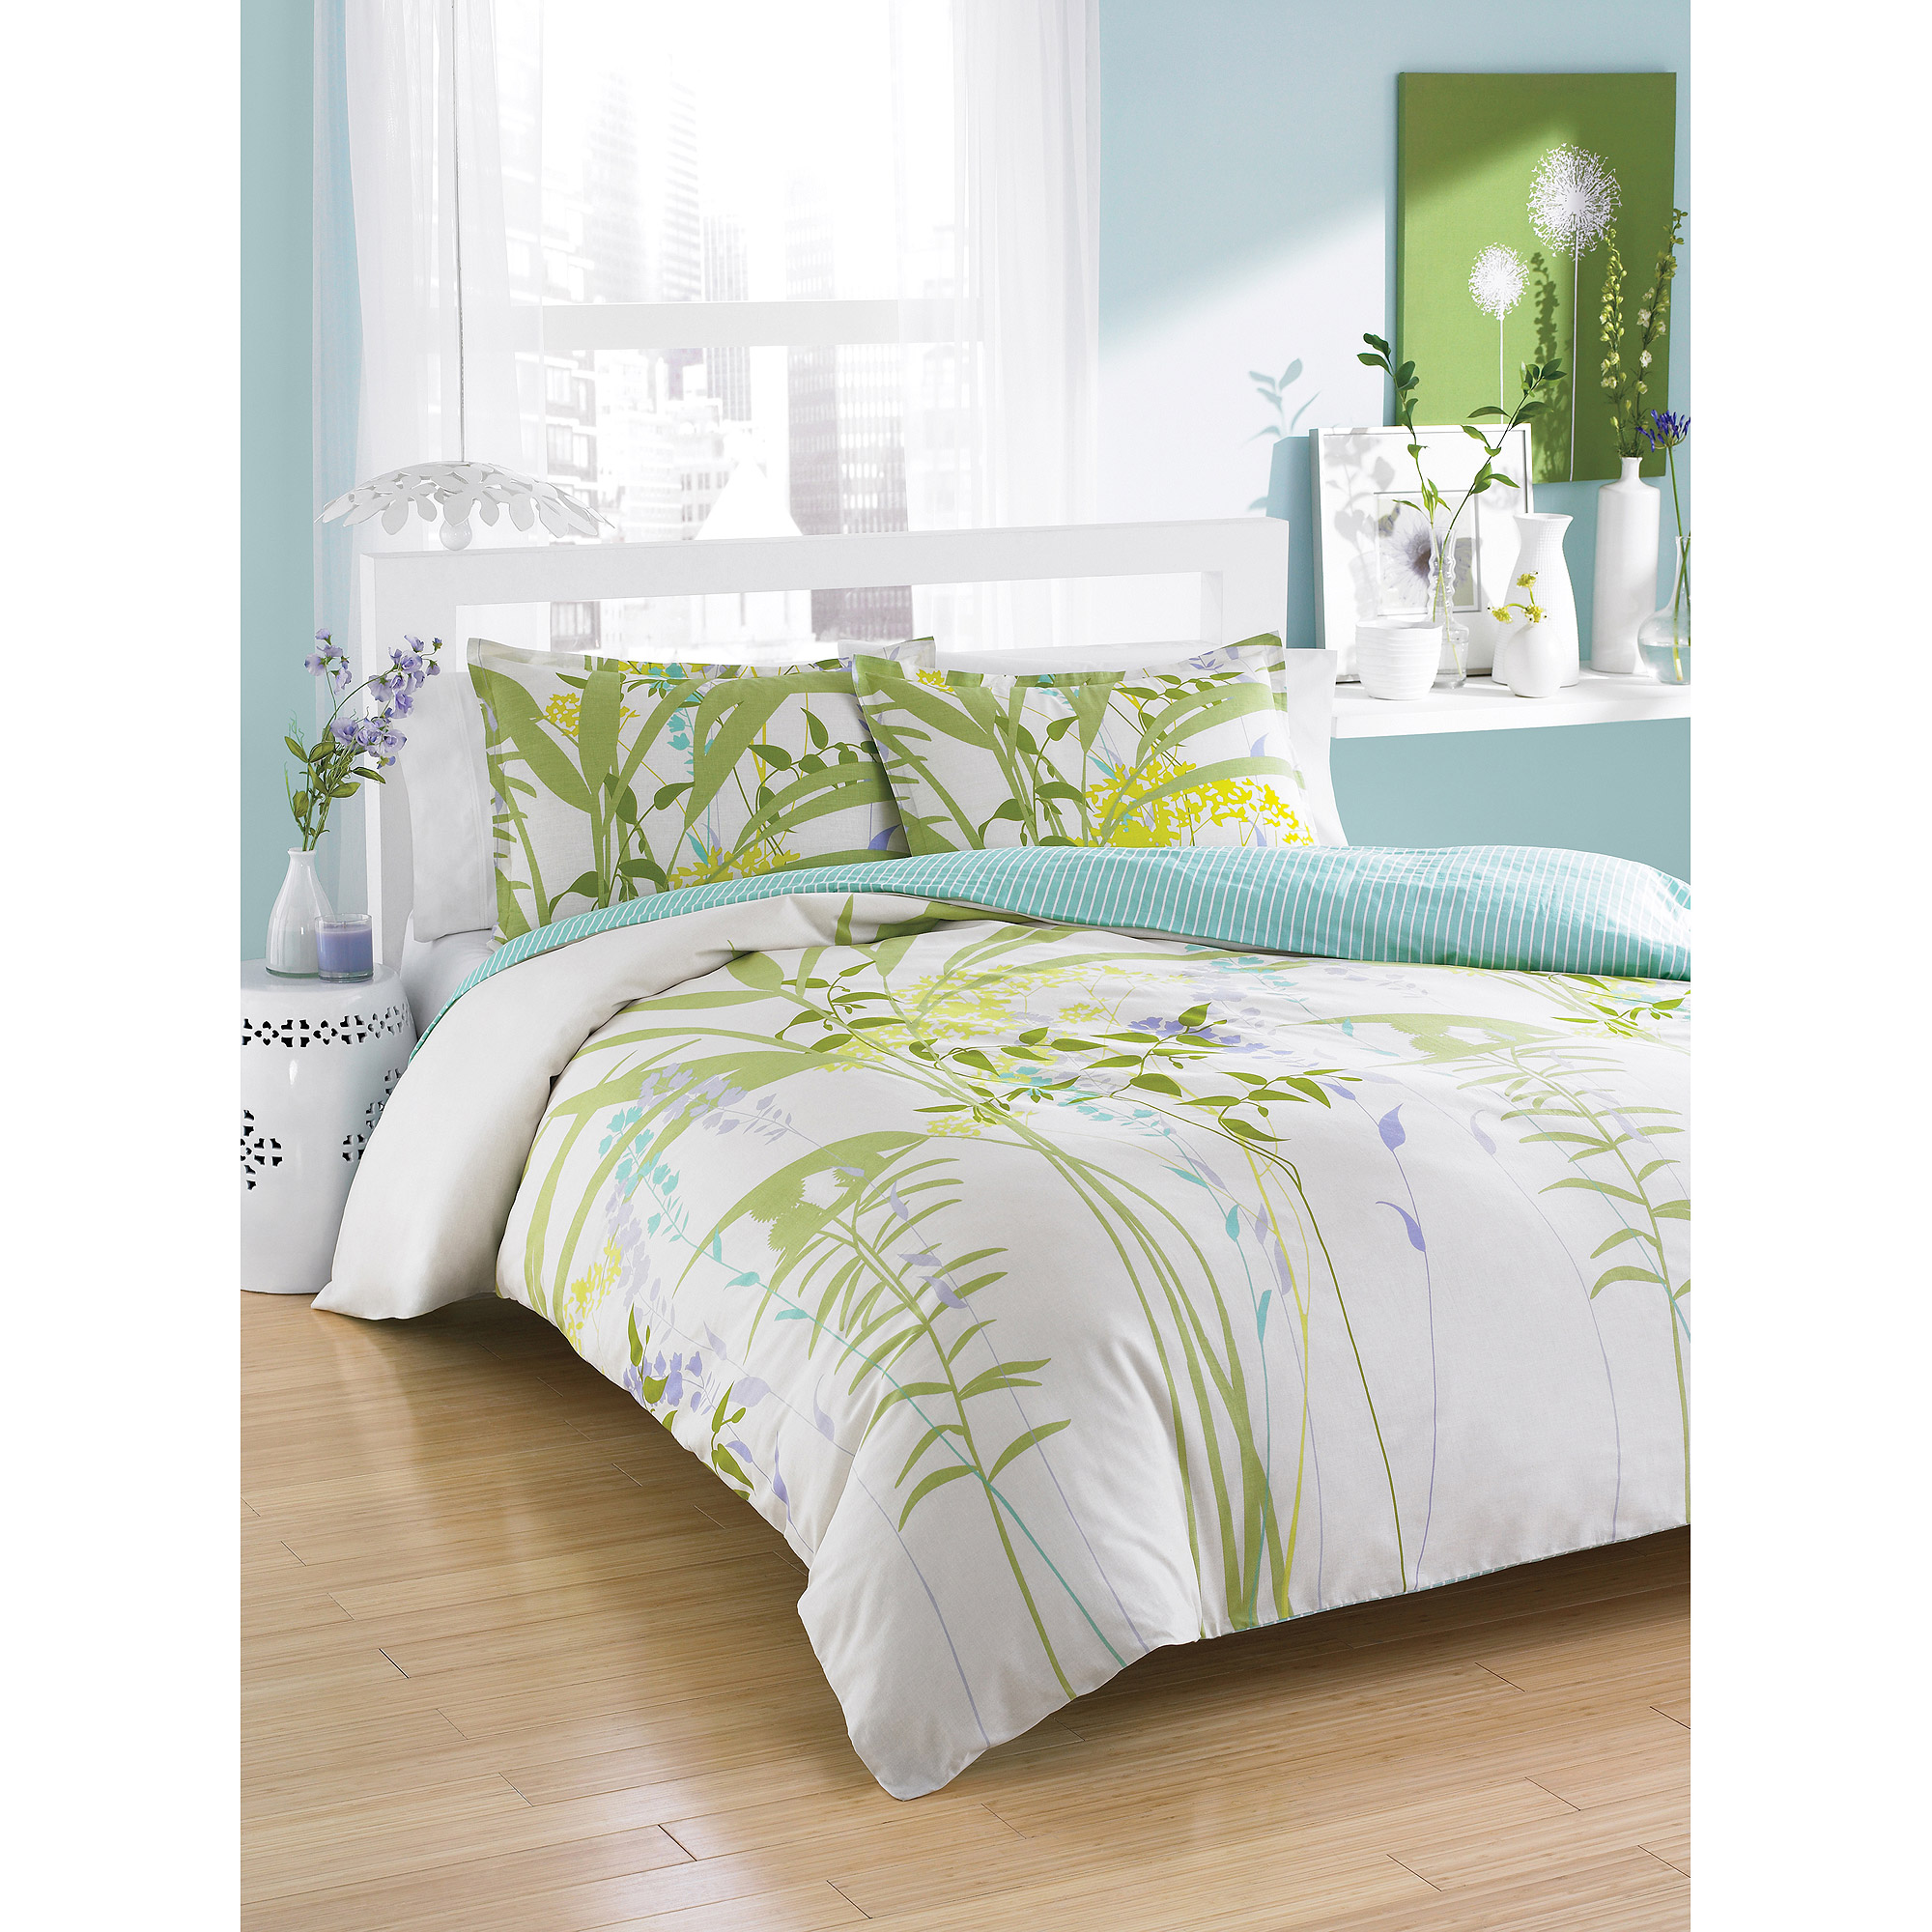 City Scene Mixed Floral Bedding Comforter Set, Green